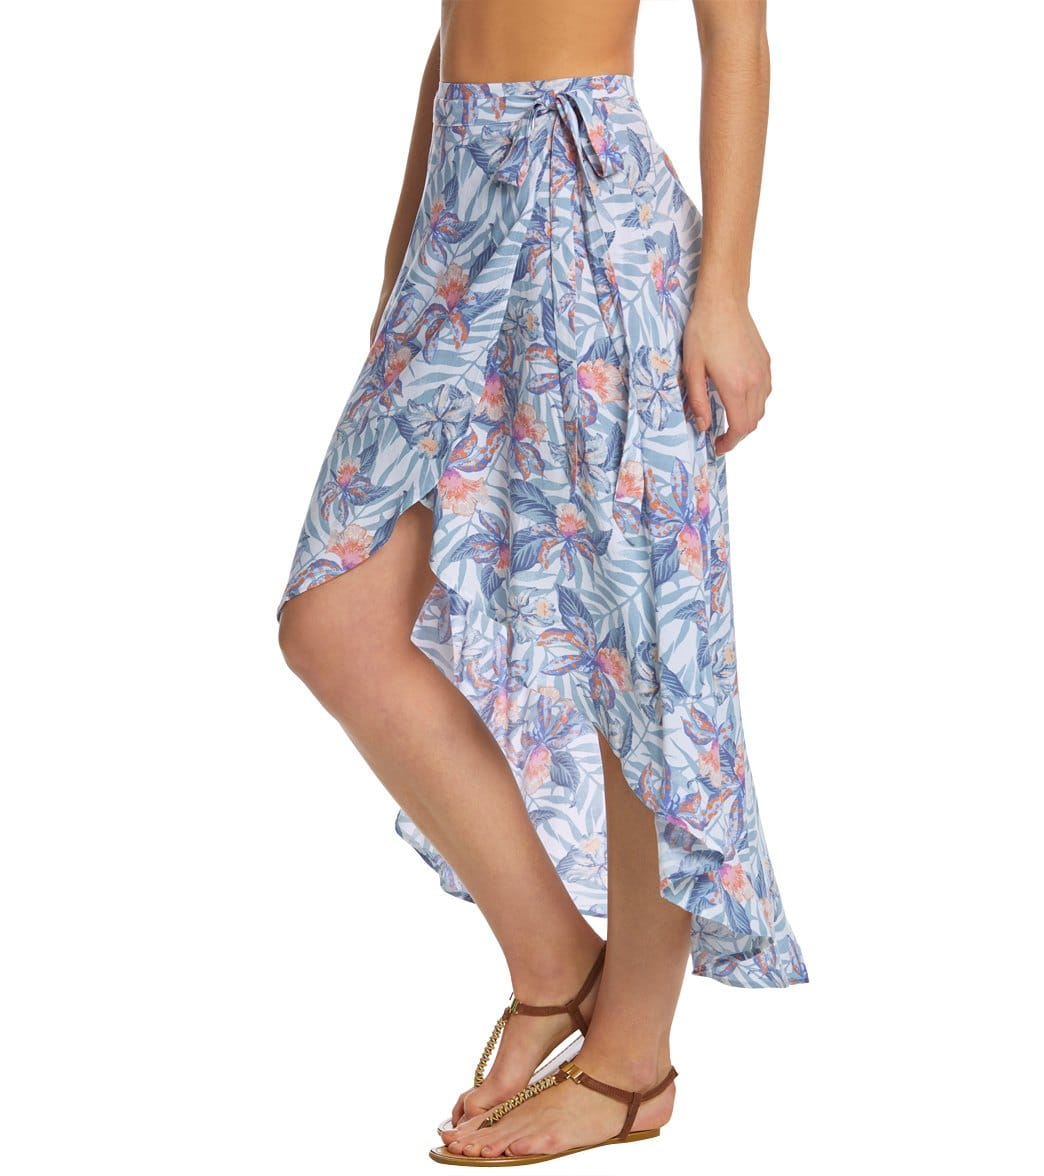 4c16f0008fee Rip Curl Women's Tropic Tribe Maxi Skirt at SwimOutlet.com - Free ...